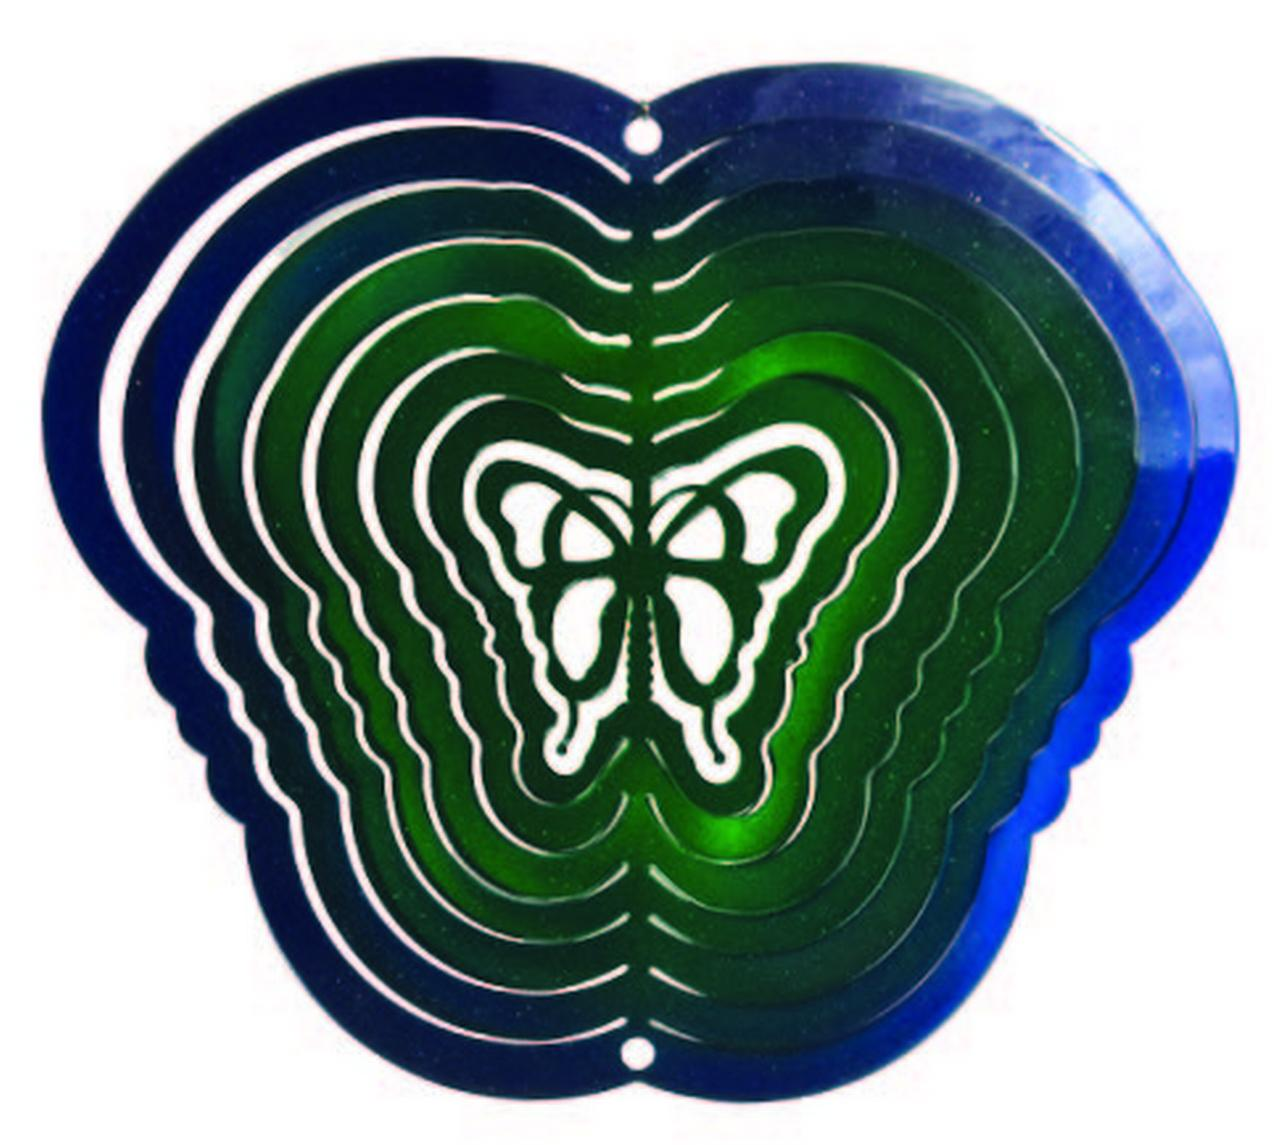 Garden Wind Spinner Butterfly Blue Green Wind Spinner by Next Innovations